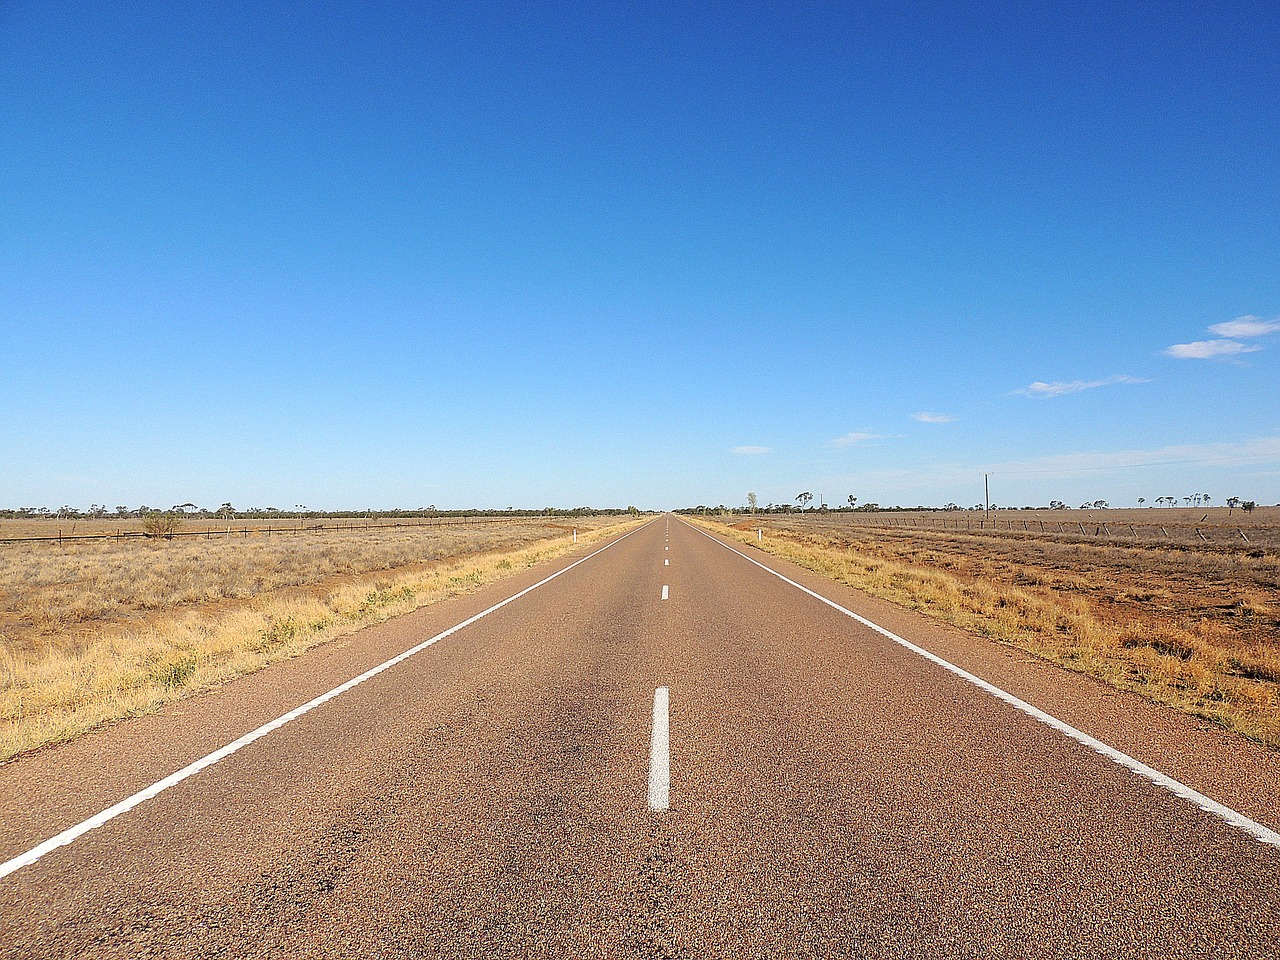 The open Australian Road - The Complete Guide to Getting Around Australia - The Trusted Traveller